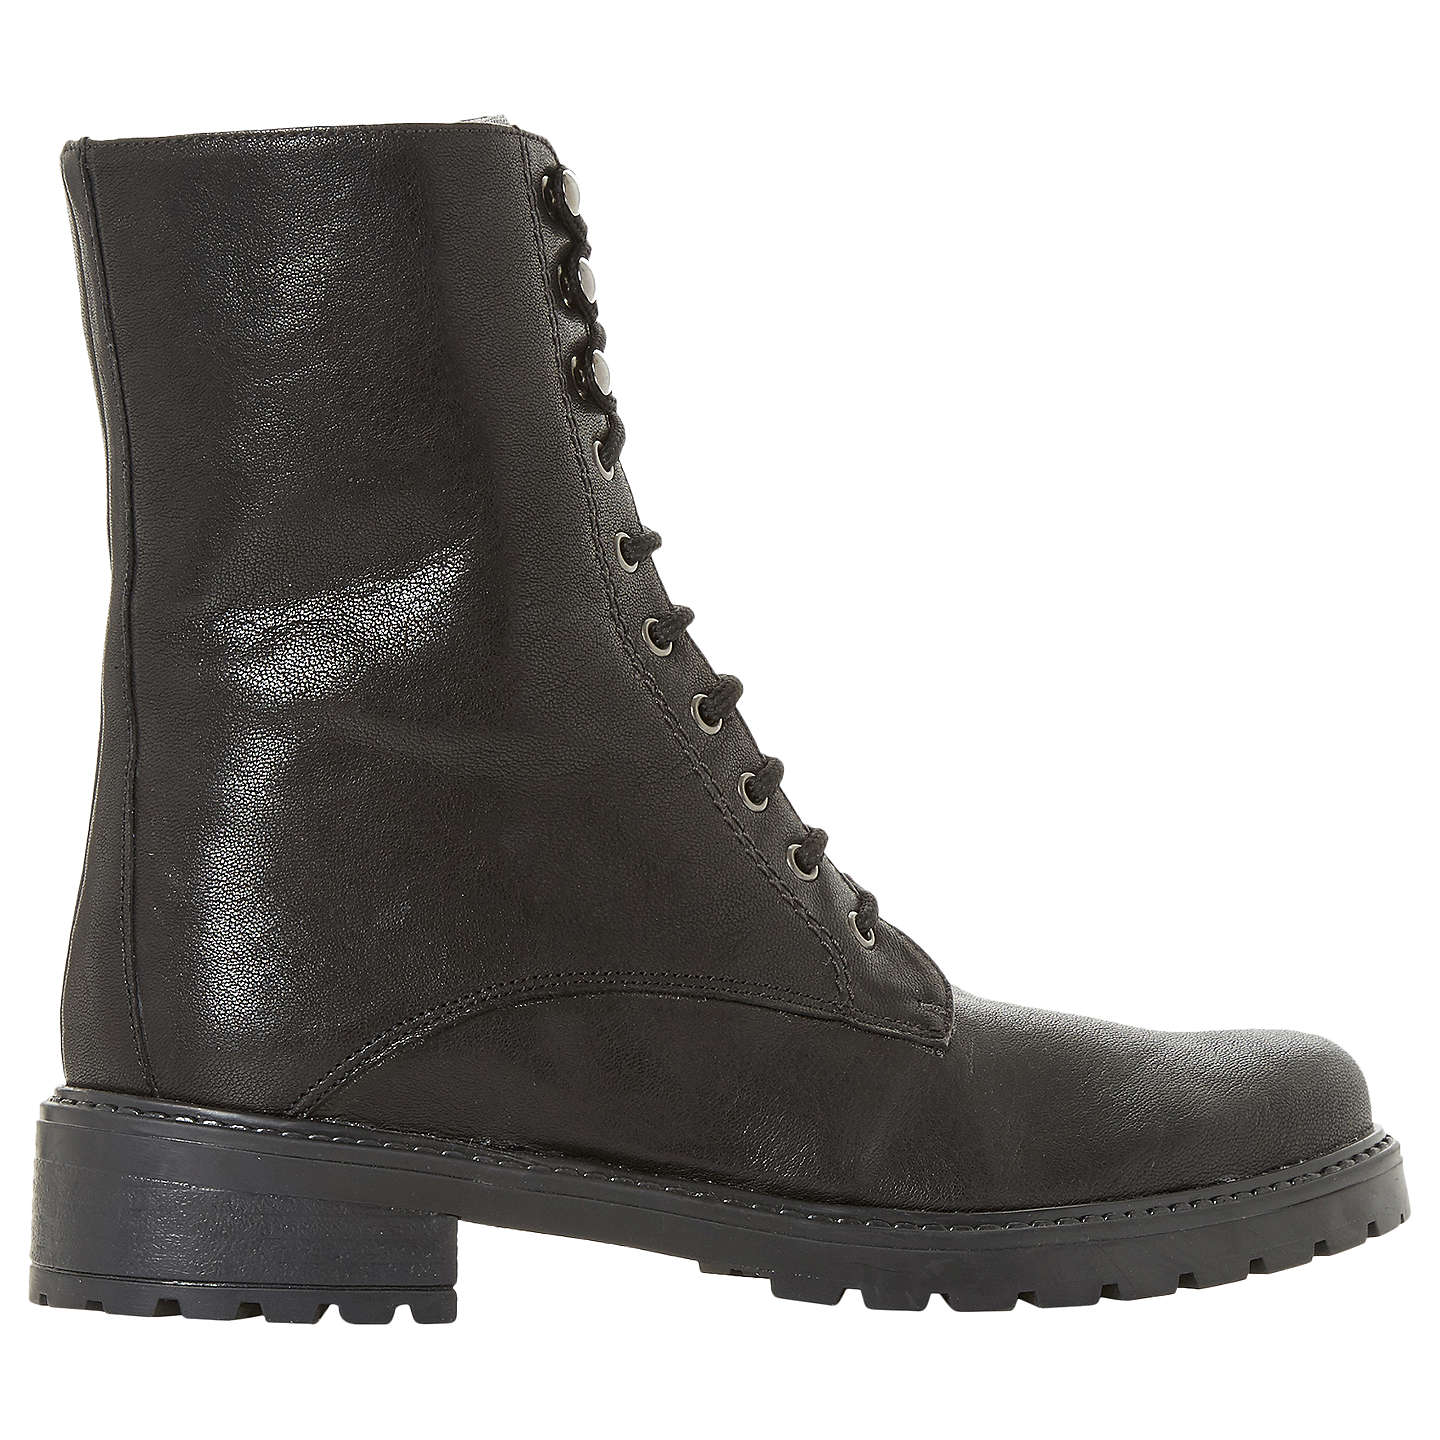 BuyDune Rayko Lace Up Calf Boots, Black, 3 Online at johnlewis.com